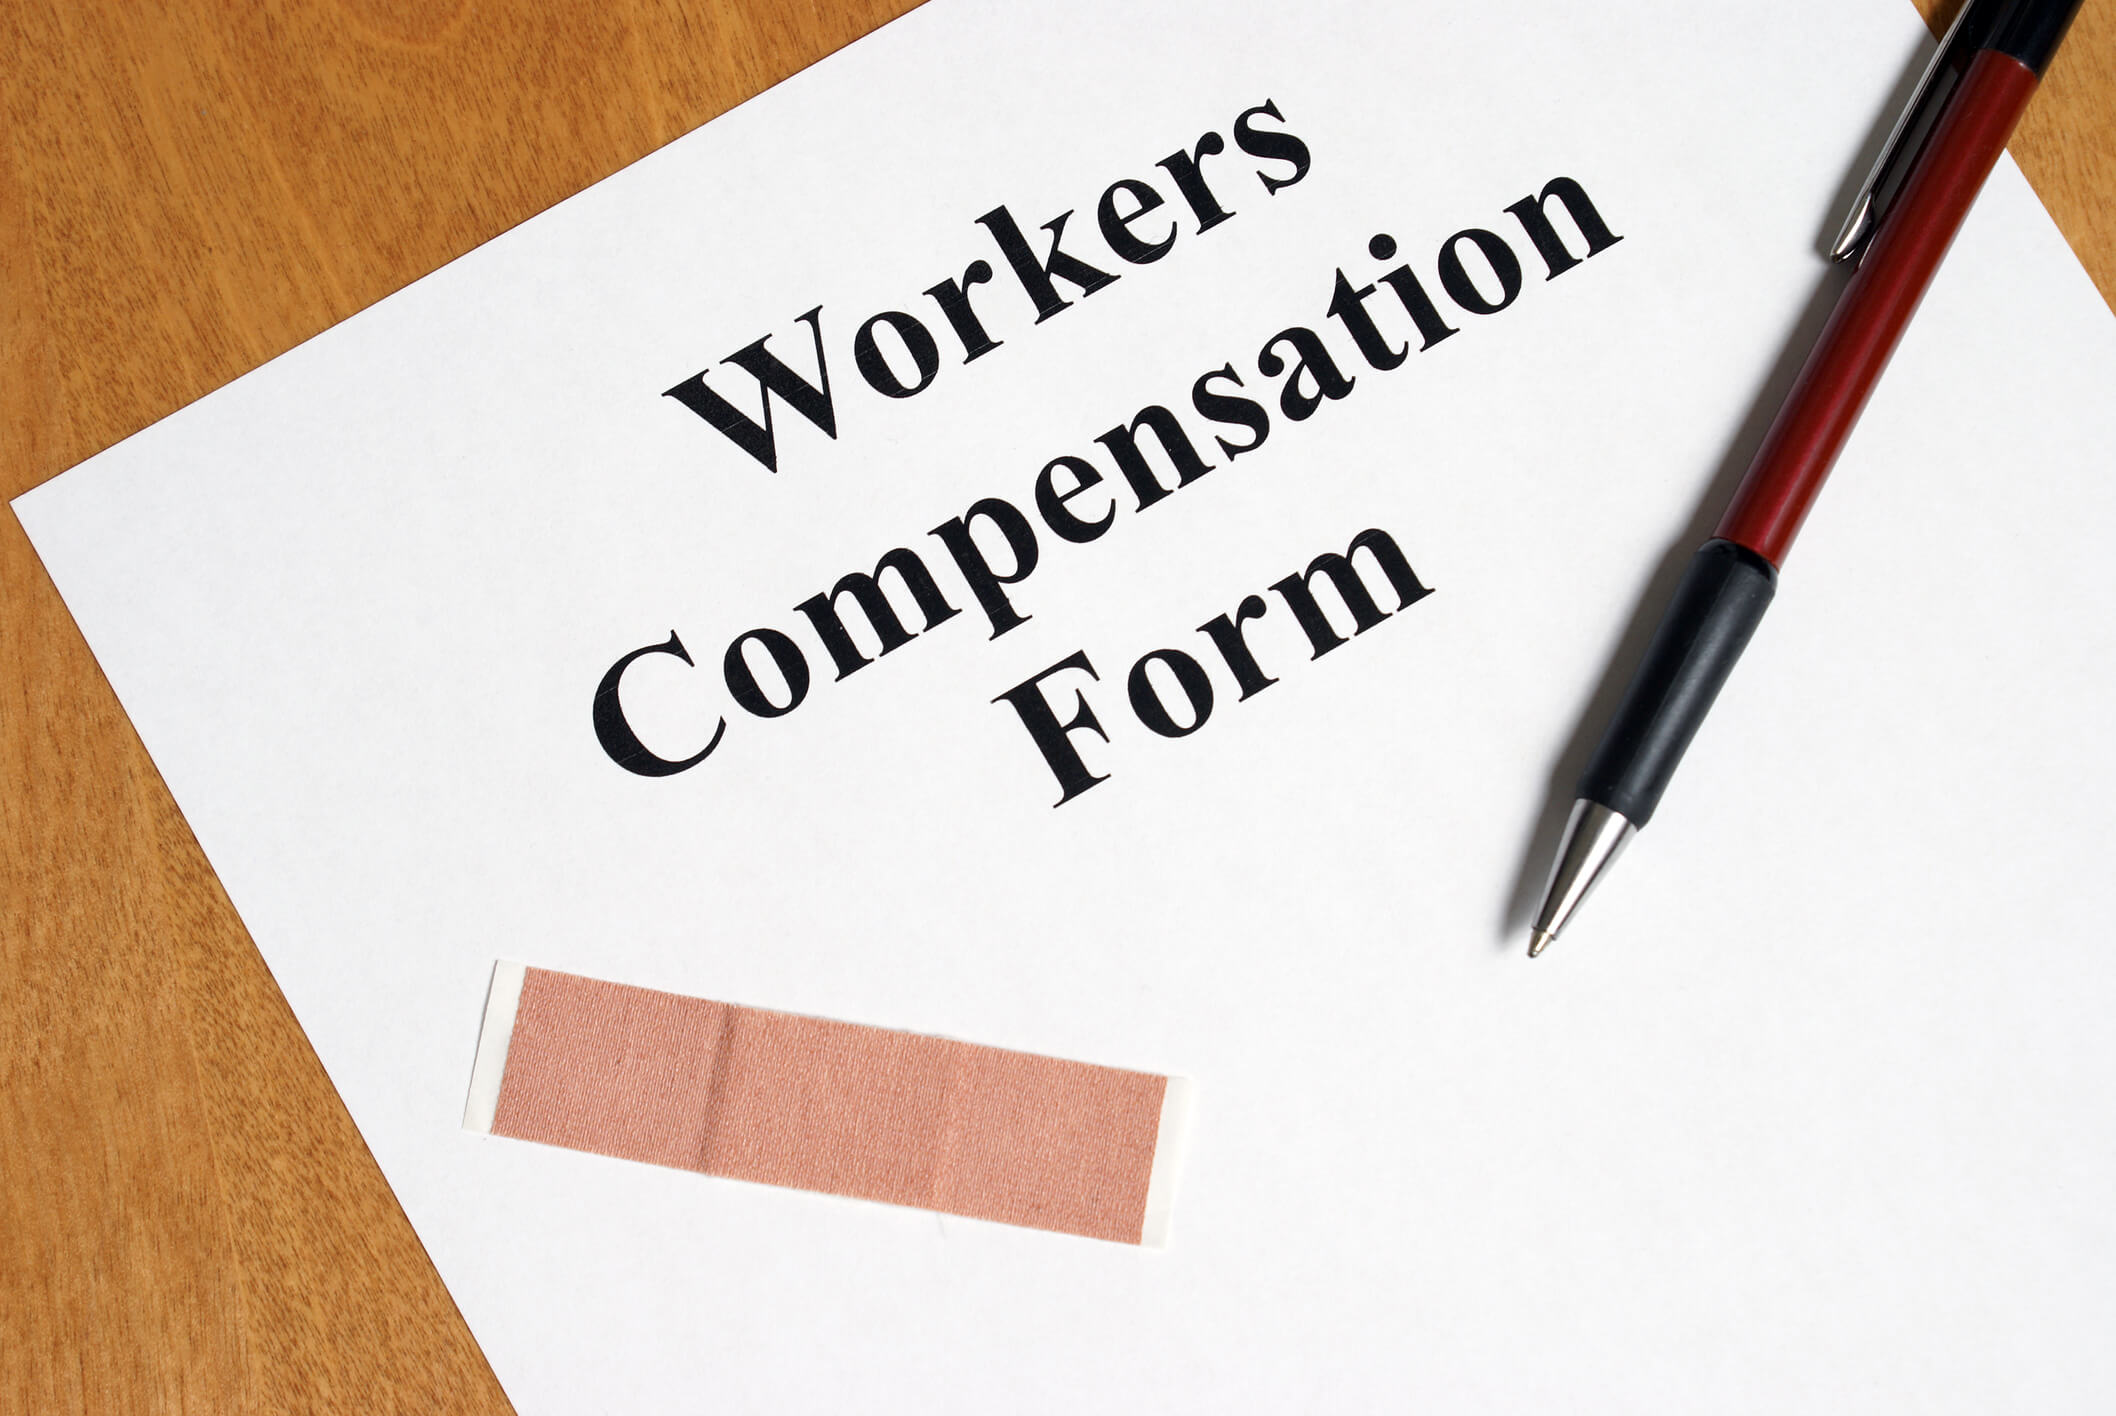 Worker's Compensation Insurance - Complete Controller